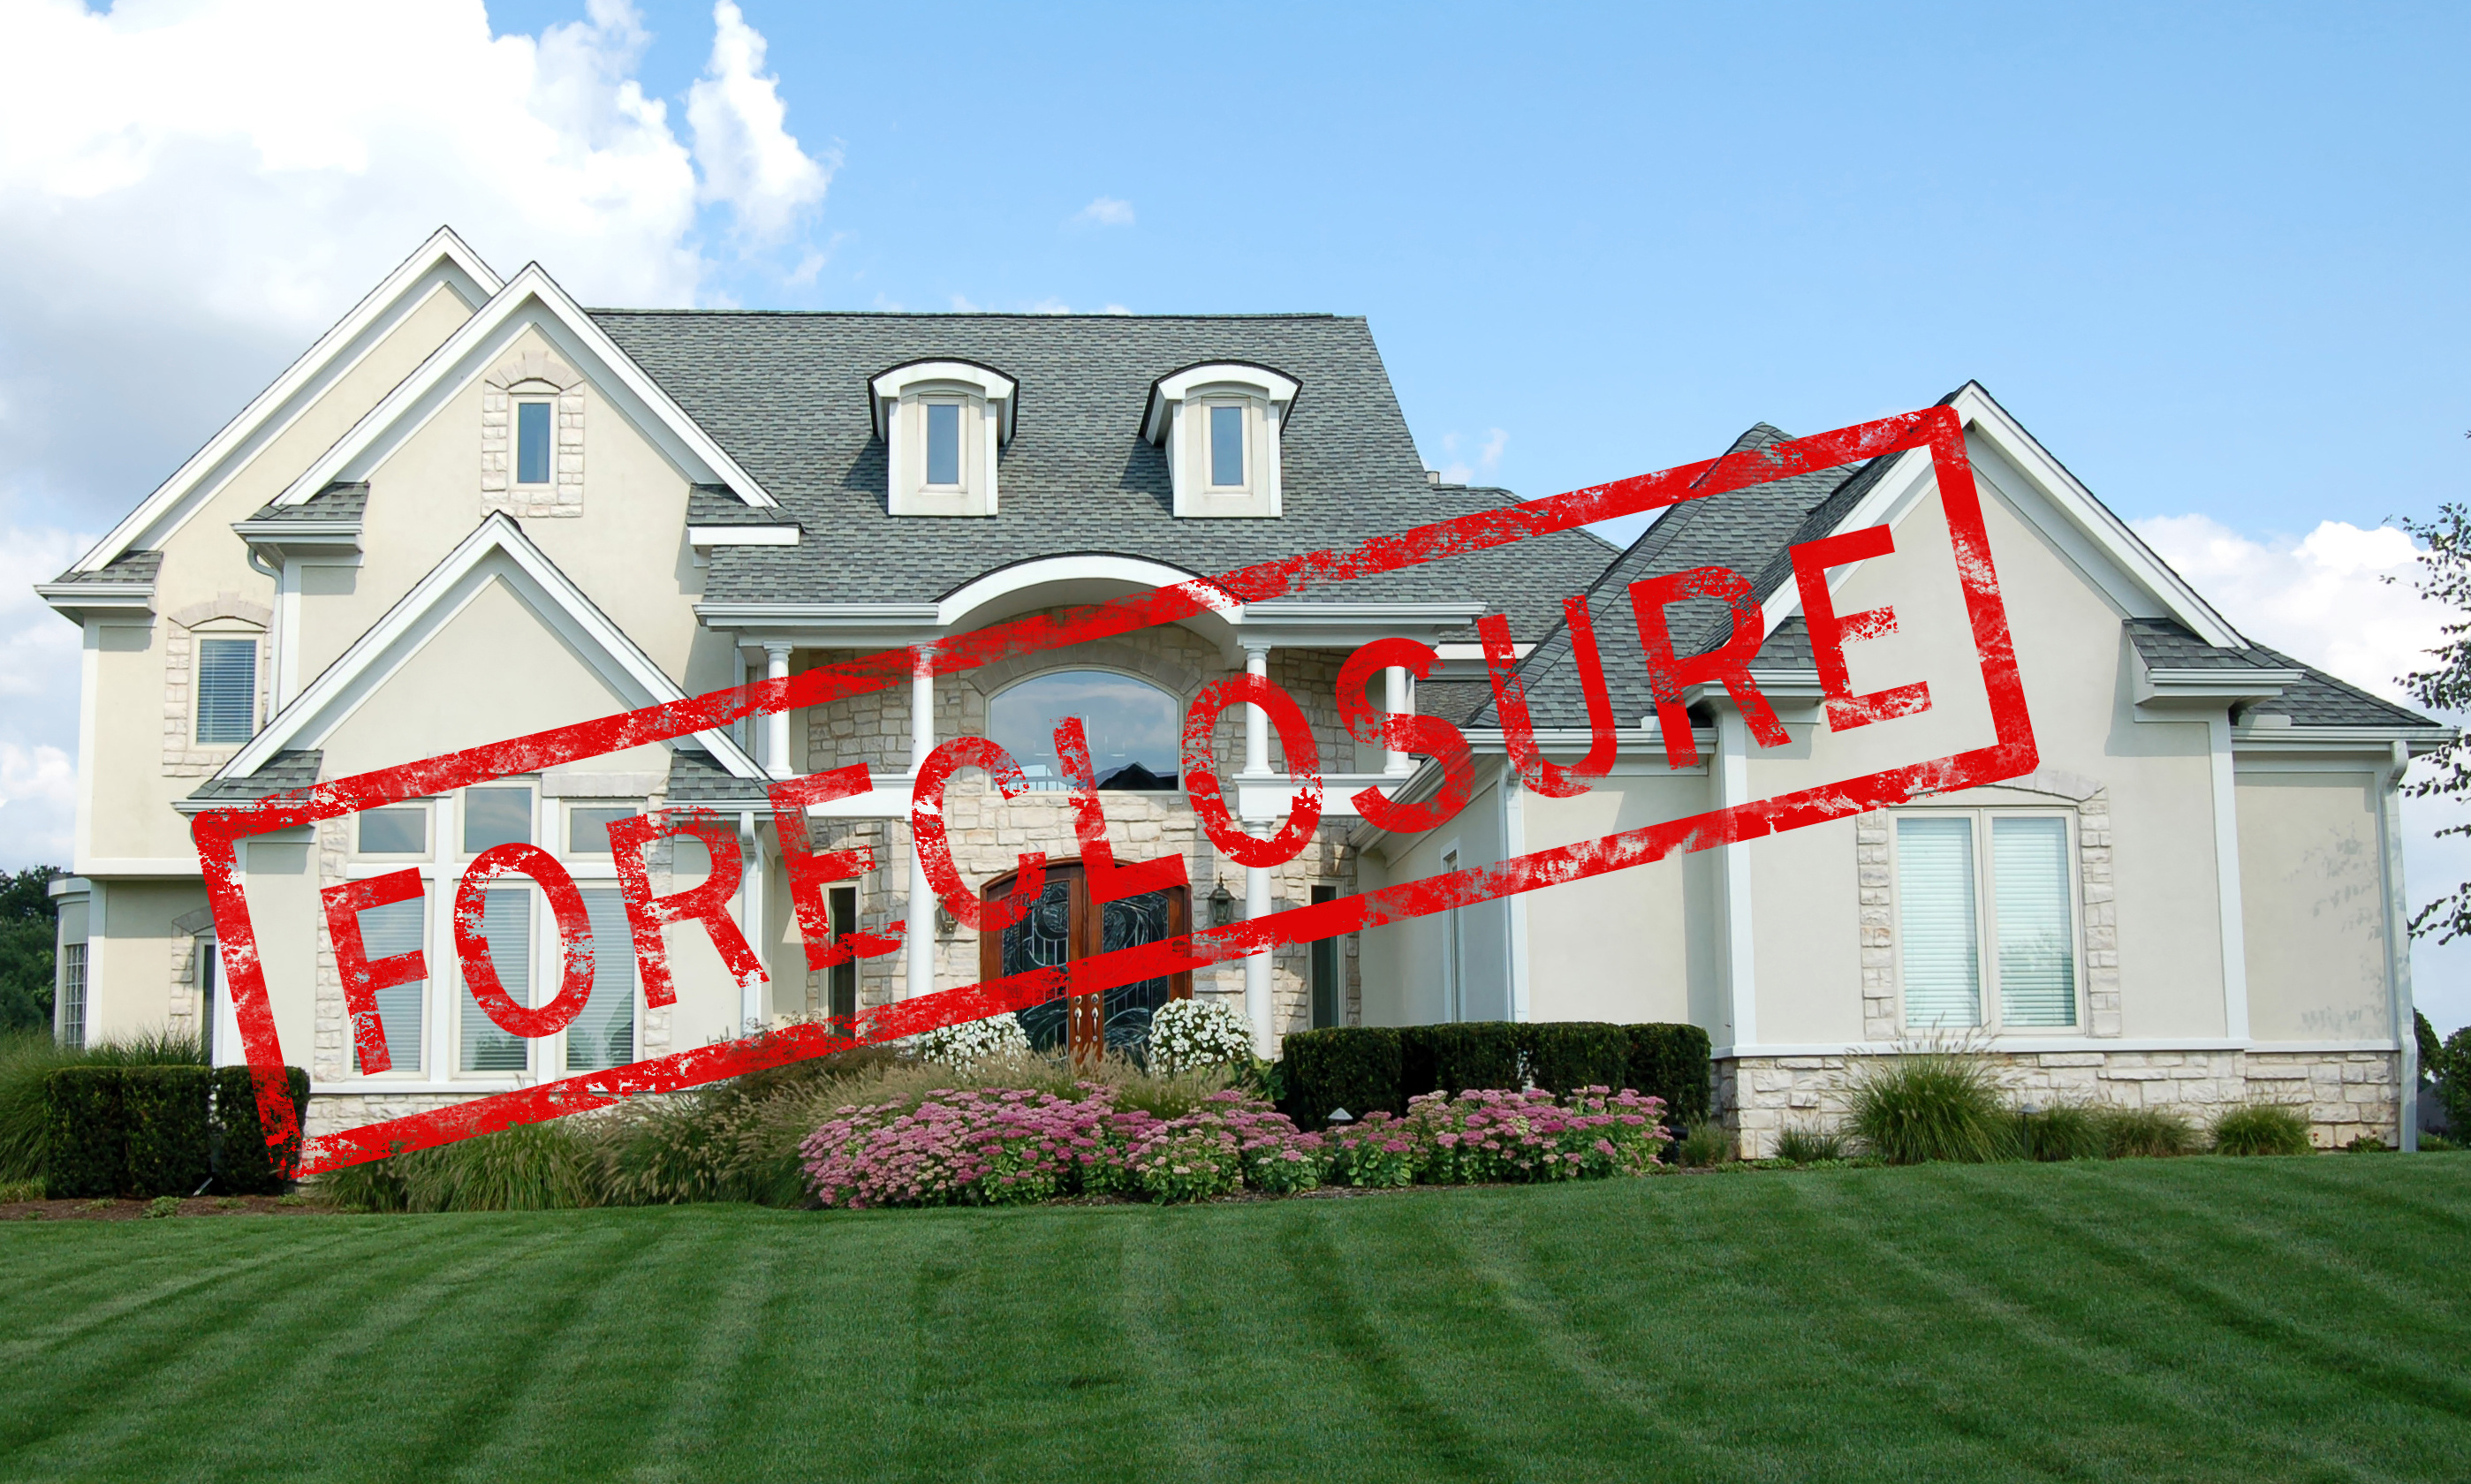 Call GDB Appraisal Services, Inc when you need appraisals of El Paso foreclosures